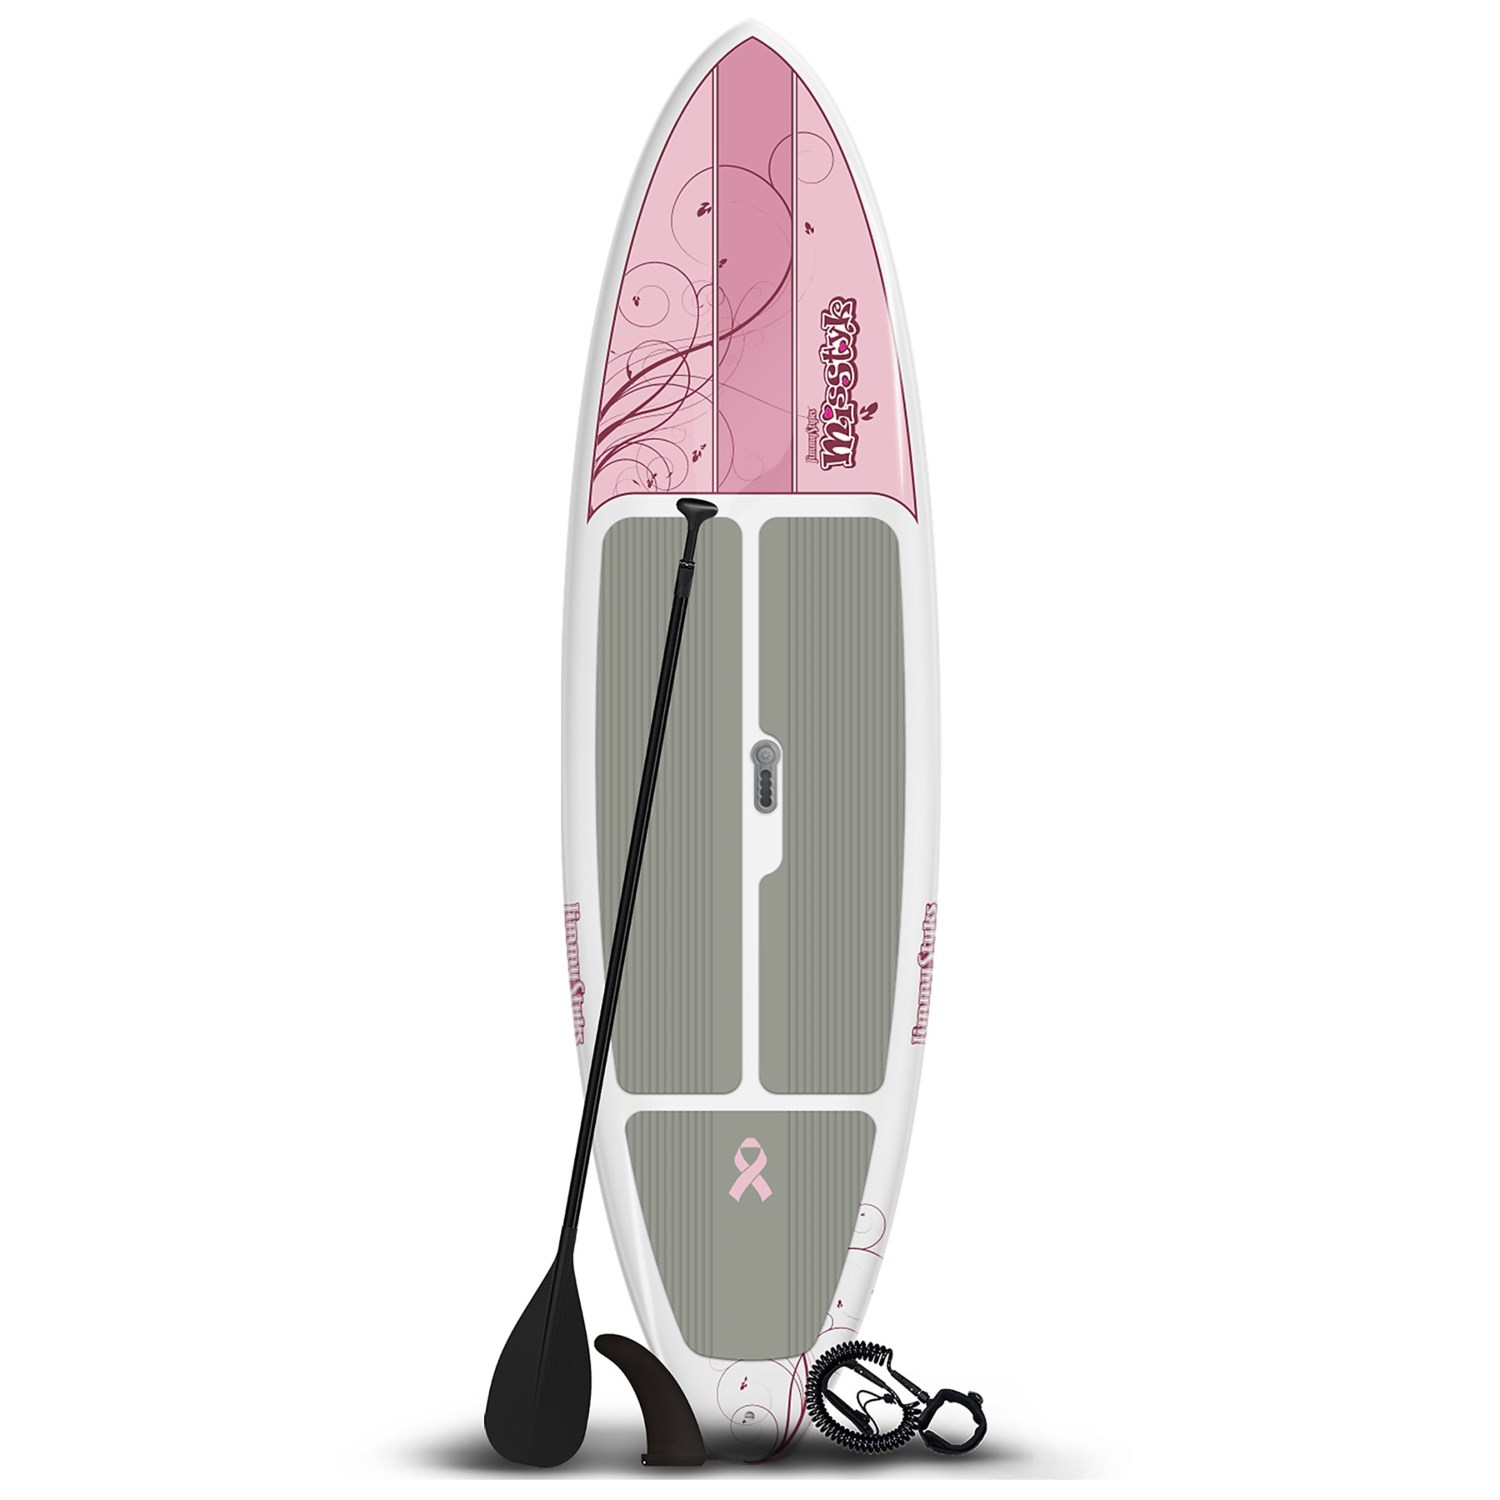 Jimmy Styks Misstyk Stand Up Paddle Board Package For Women Ti161 Save 35